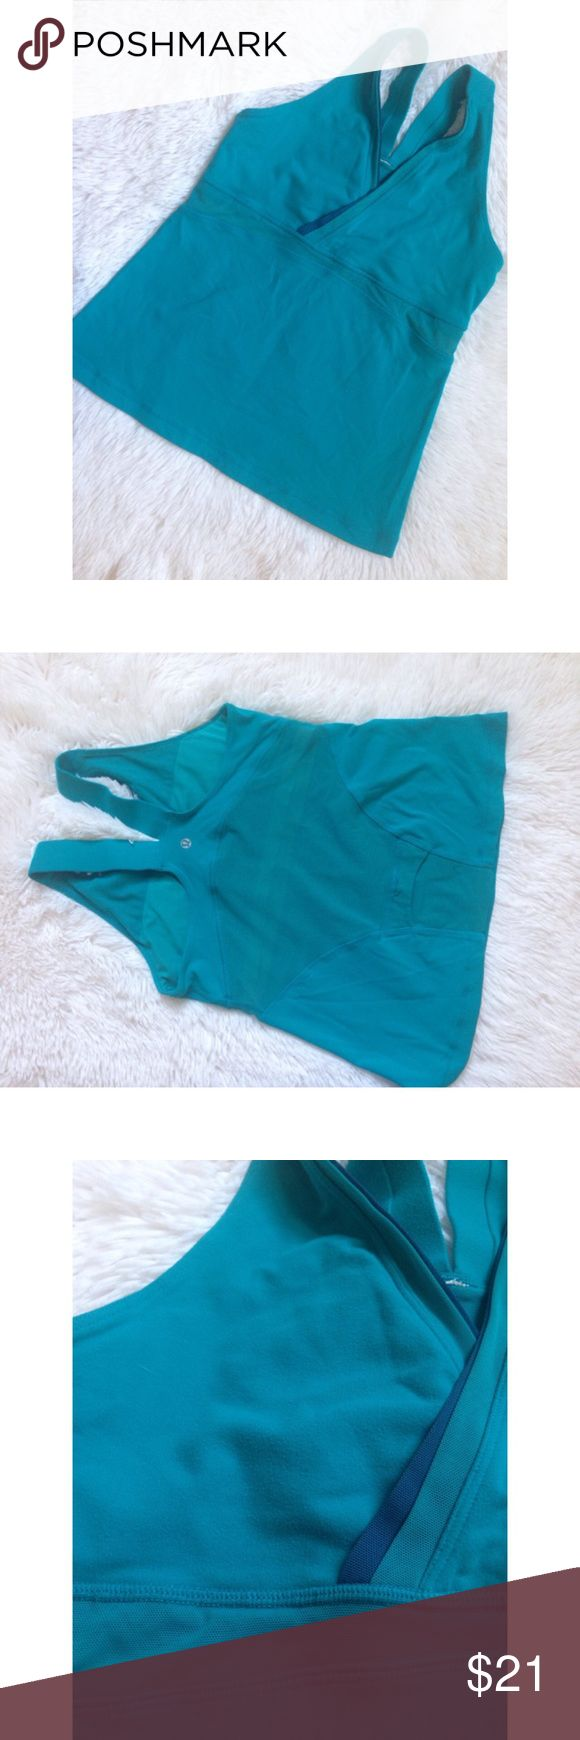 Lululemon Athletica Turquoise Deep V Wrap Mesh Top ☀️ SALE!! Lowest price, no offers please. 🍭Older style yet still classic lulu tank. GUC, sueding throughout but no stains, holes, tears. Top is similar to stock photo, included to show fit only. Colors are solid turquoise & blue mesh. ✖️NO TRADES • NO PP • NO MERC@RI  ✔️ADD'L INFO/PICS BY REQUEST ✔️POSTED = AVAILABLE lululemon athletica Tops Tank Tops